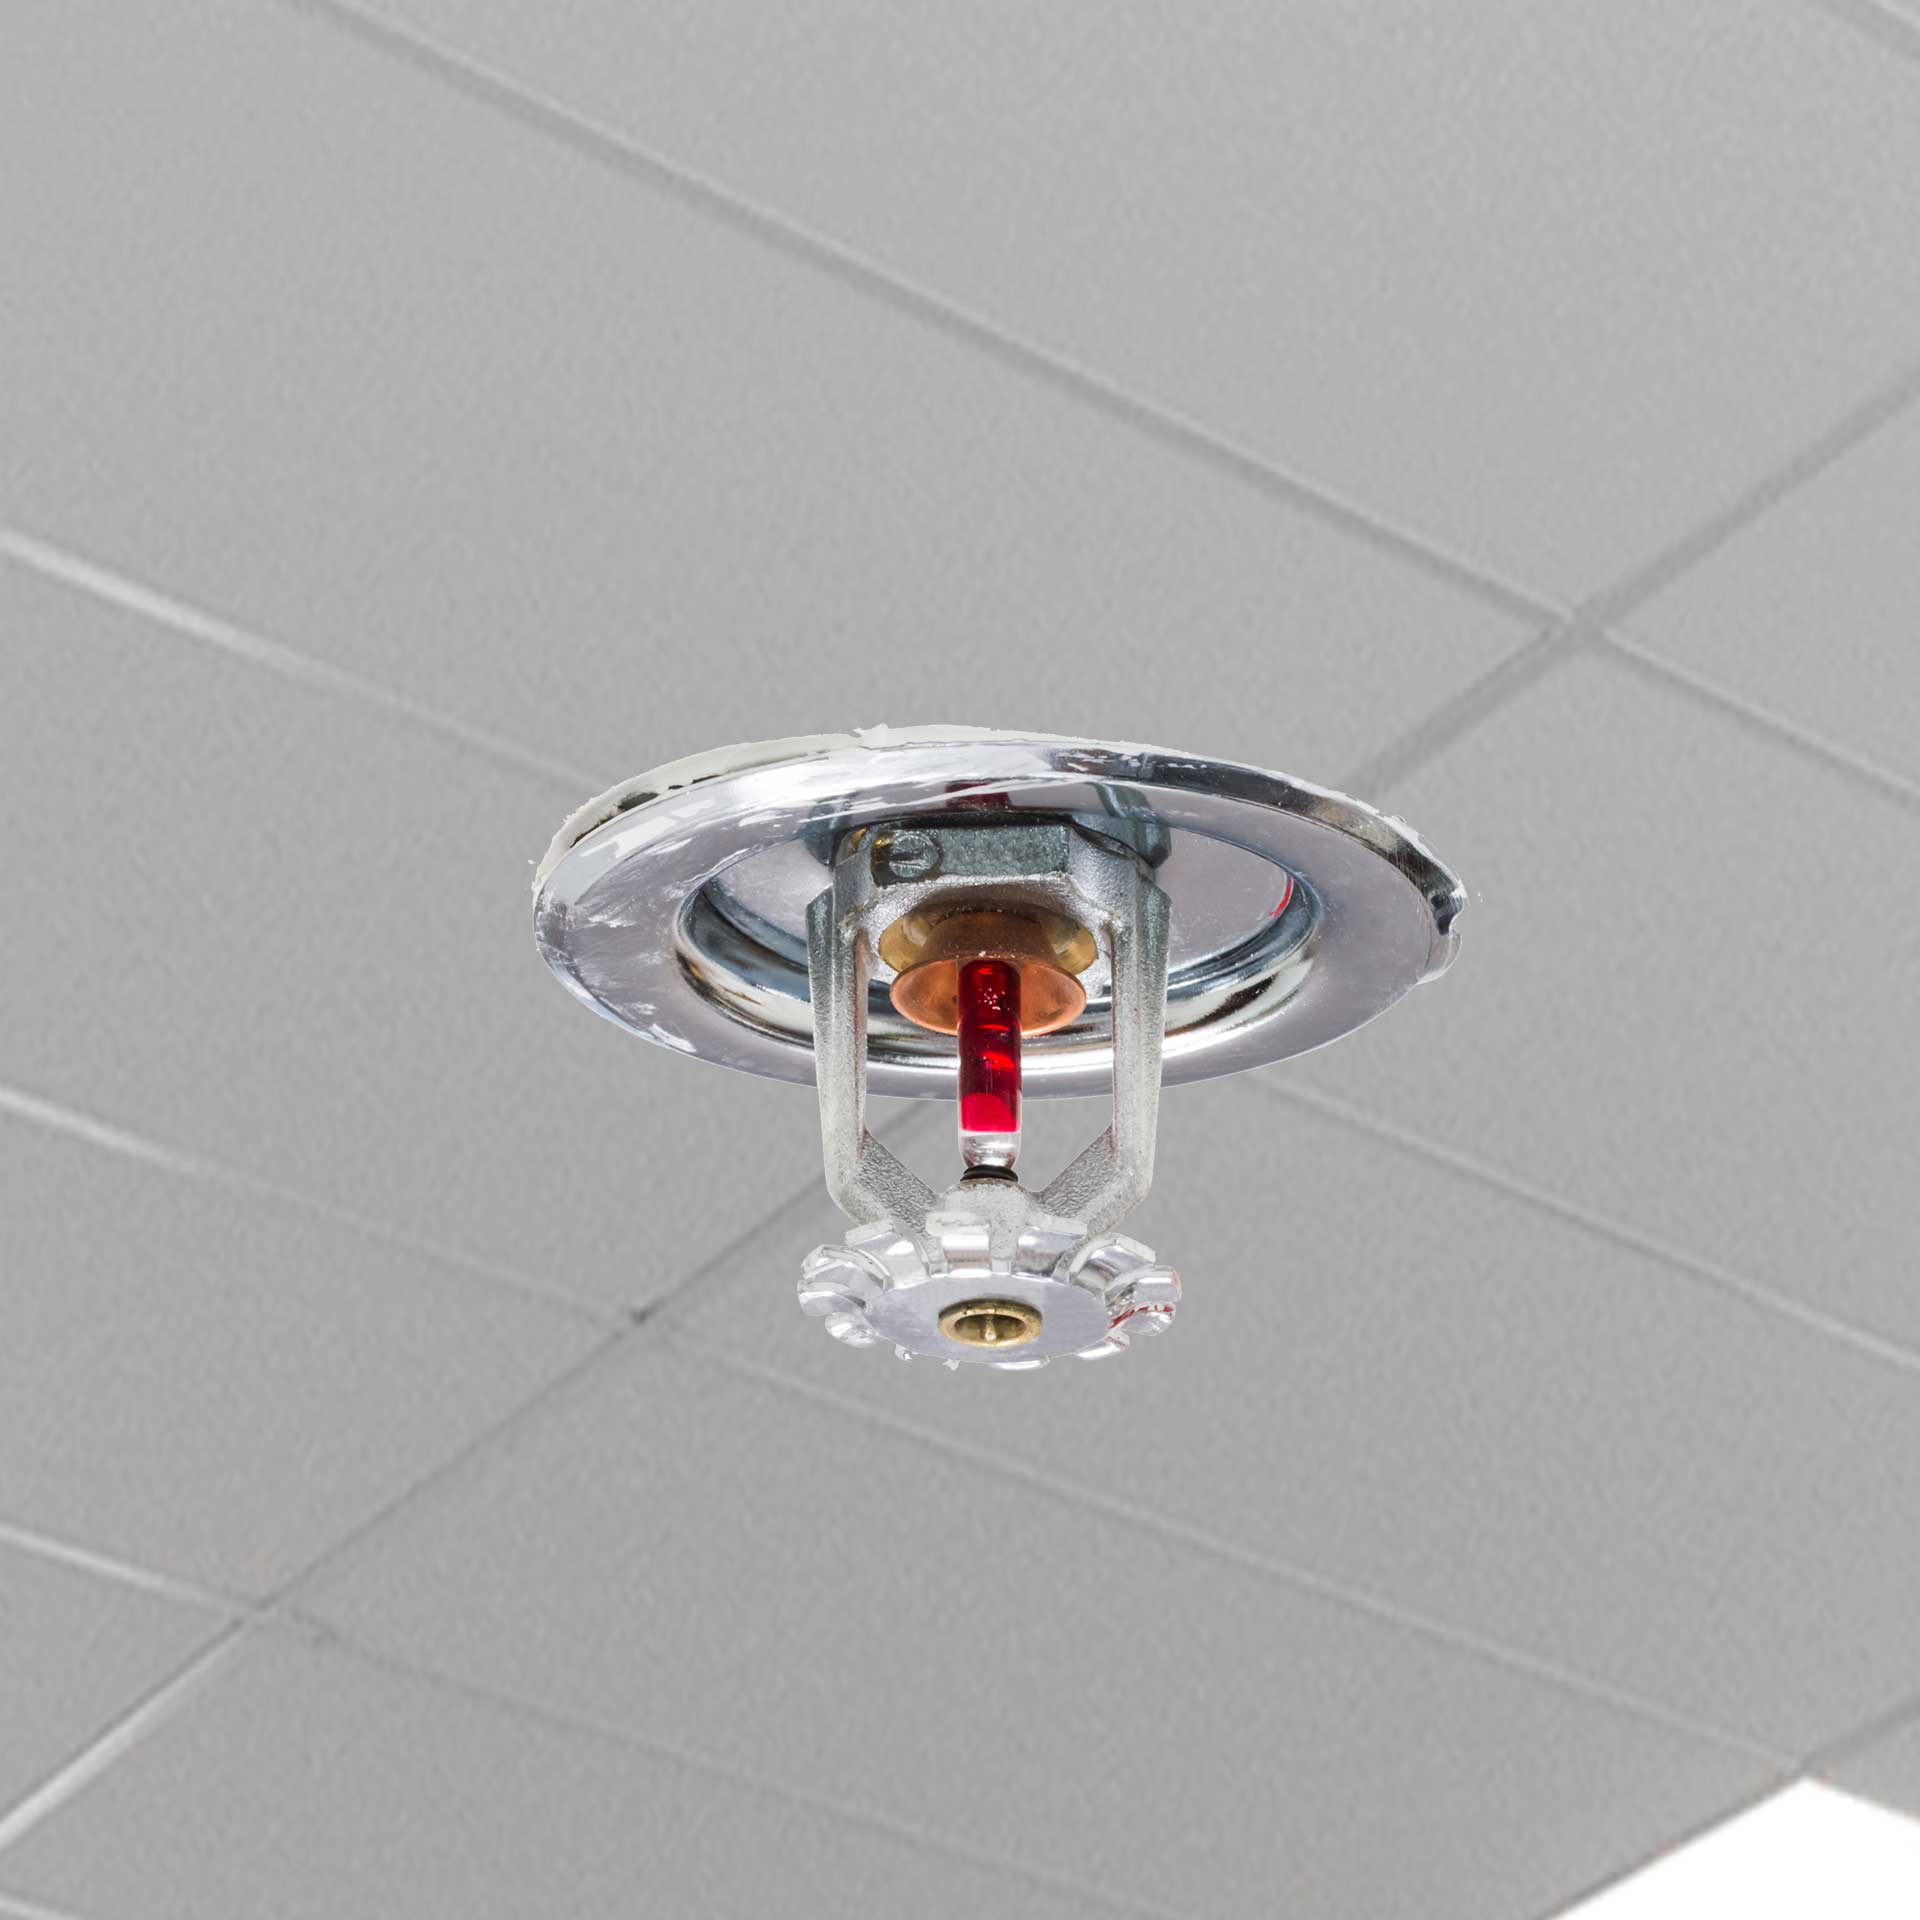 SPRINKLER SYSTEM - Excel Fire Malaysia